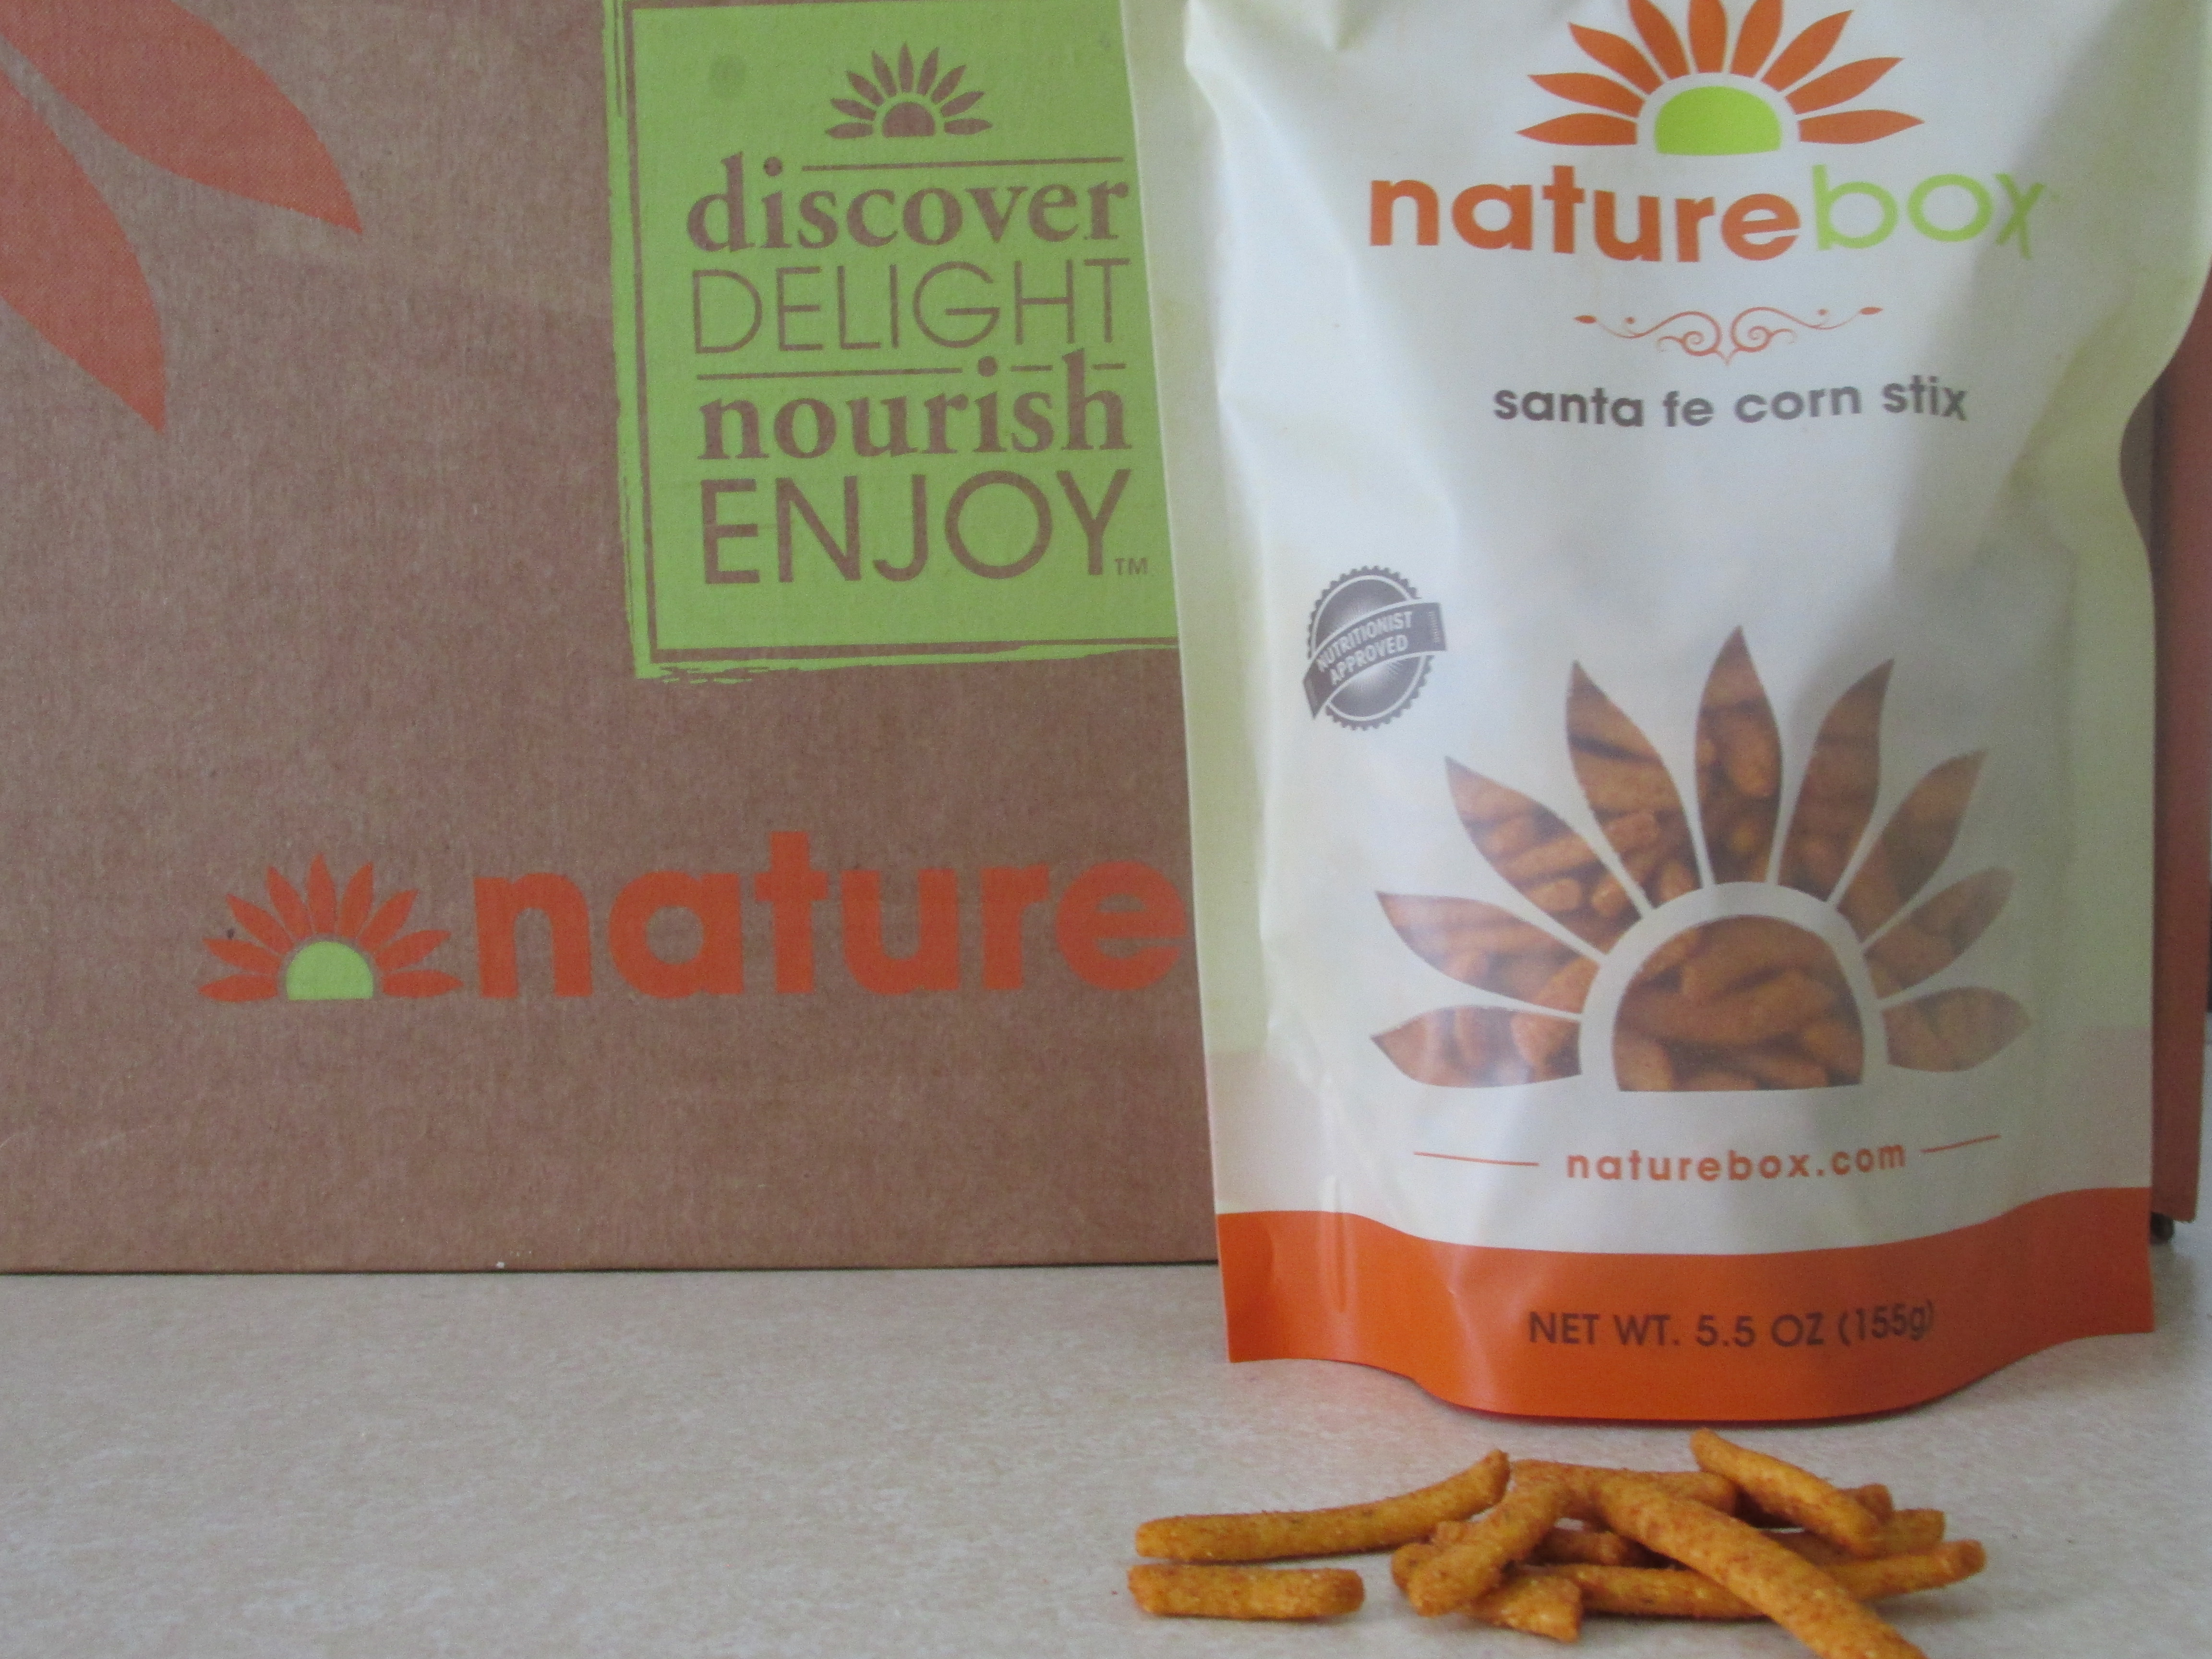 Naturebox Sante Fe Corn Stix